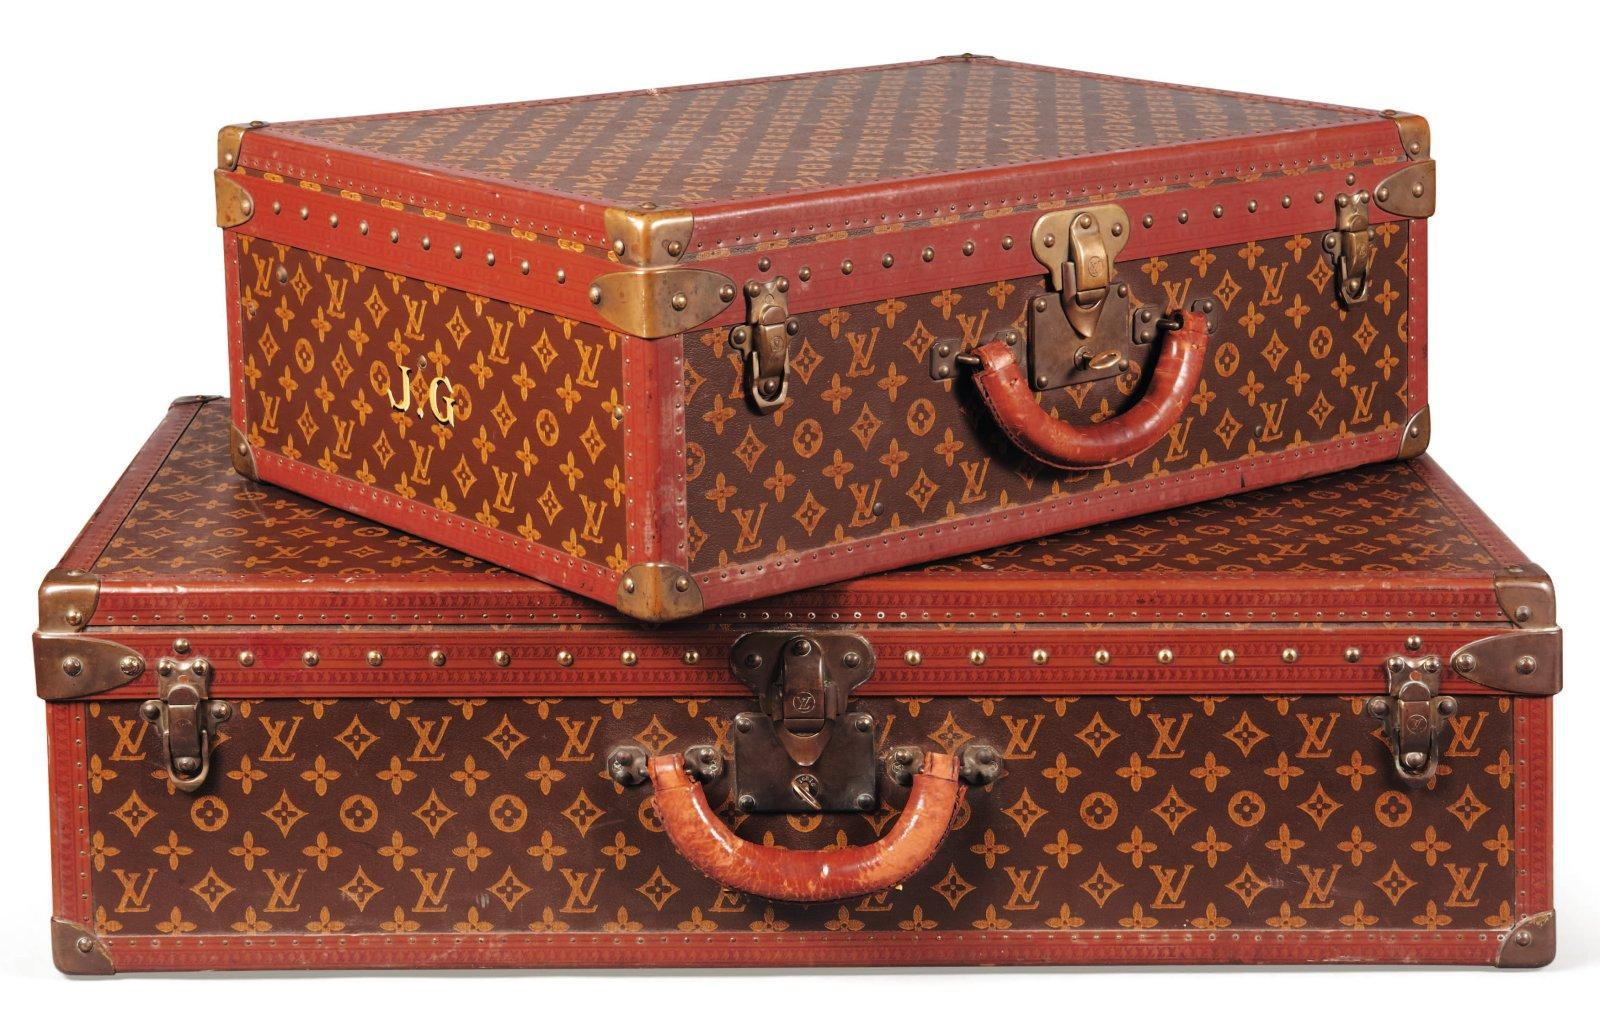 valise louis vuitton des ann es 39 30 ayant appartenu julien green valise. Black Bedroom Furniture Sets. Home Design Ideas